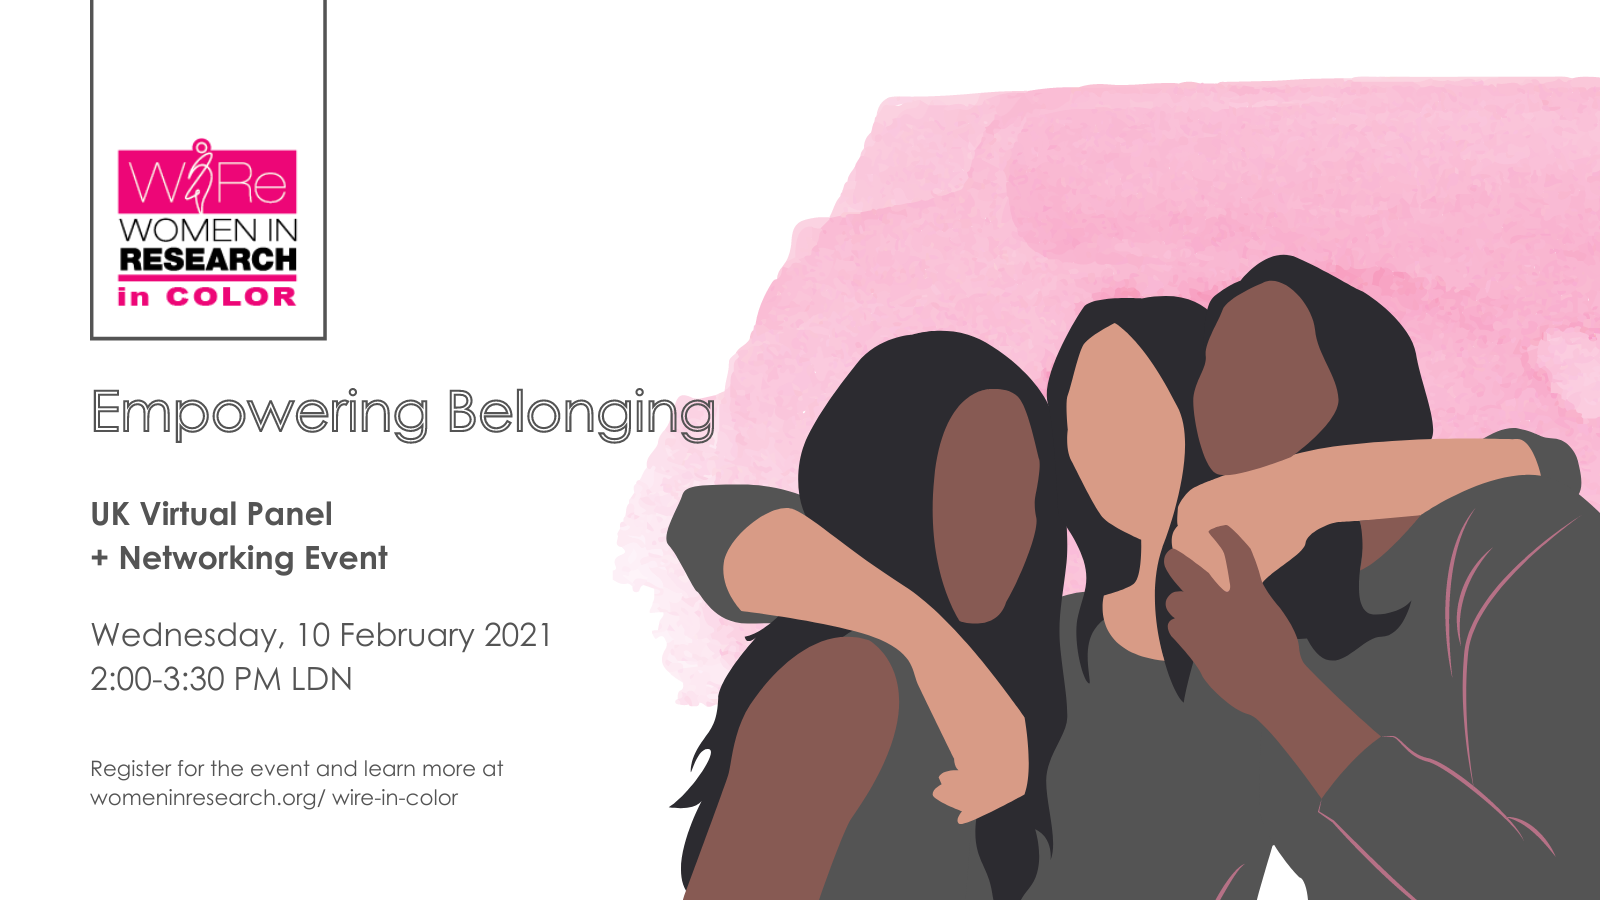 WIRe in Color UK Virtual Event: Empowering Belonging